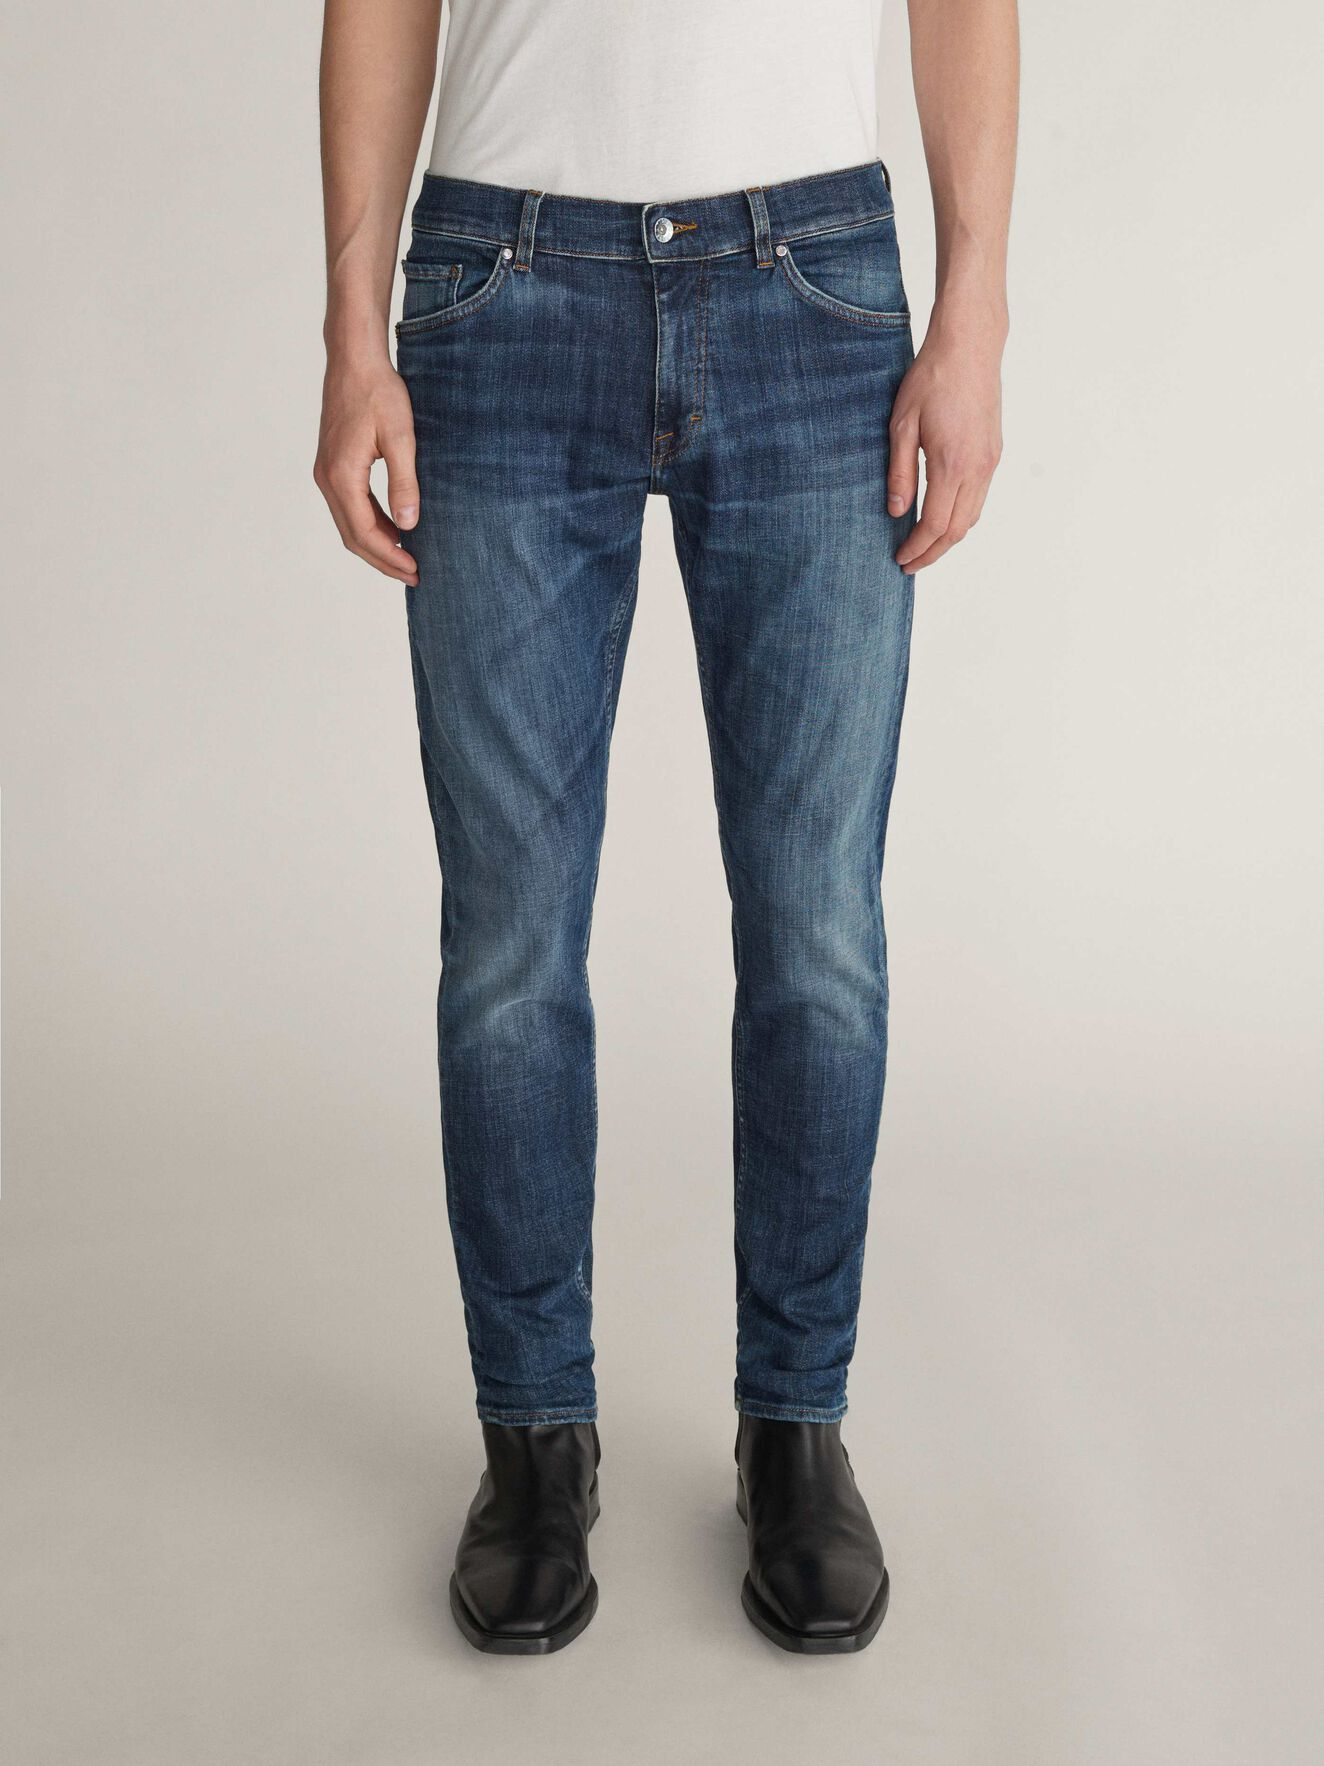 Evolve Jeans in Royal Blue from Tiger of Sweden